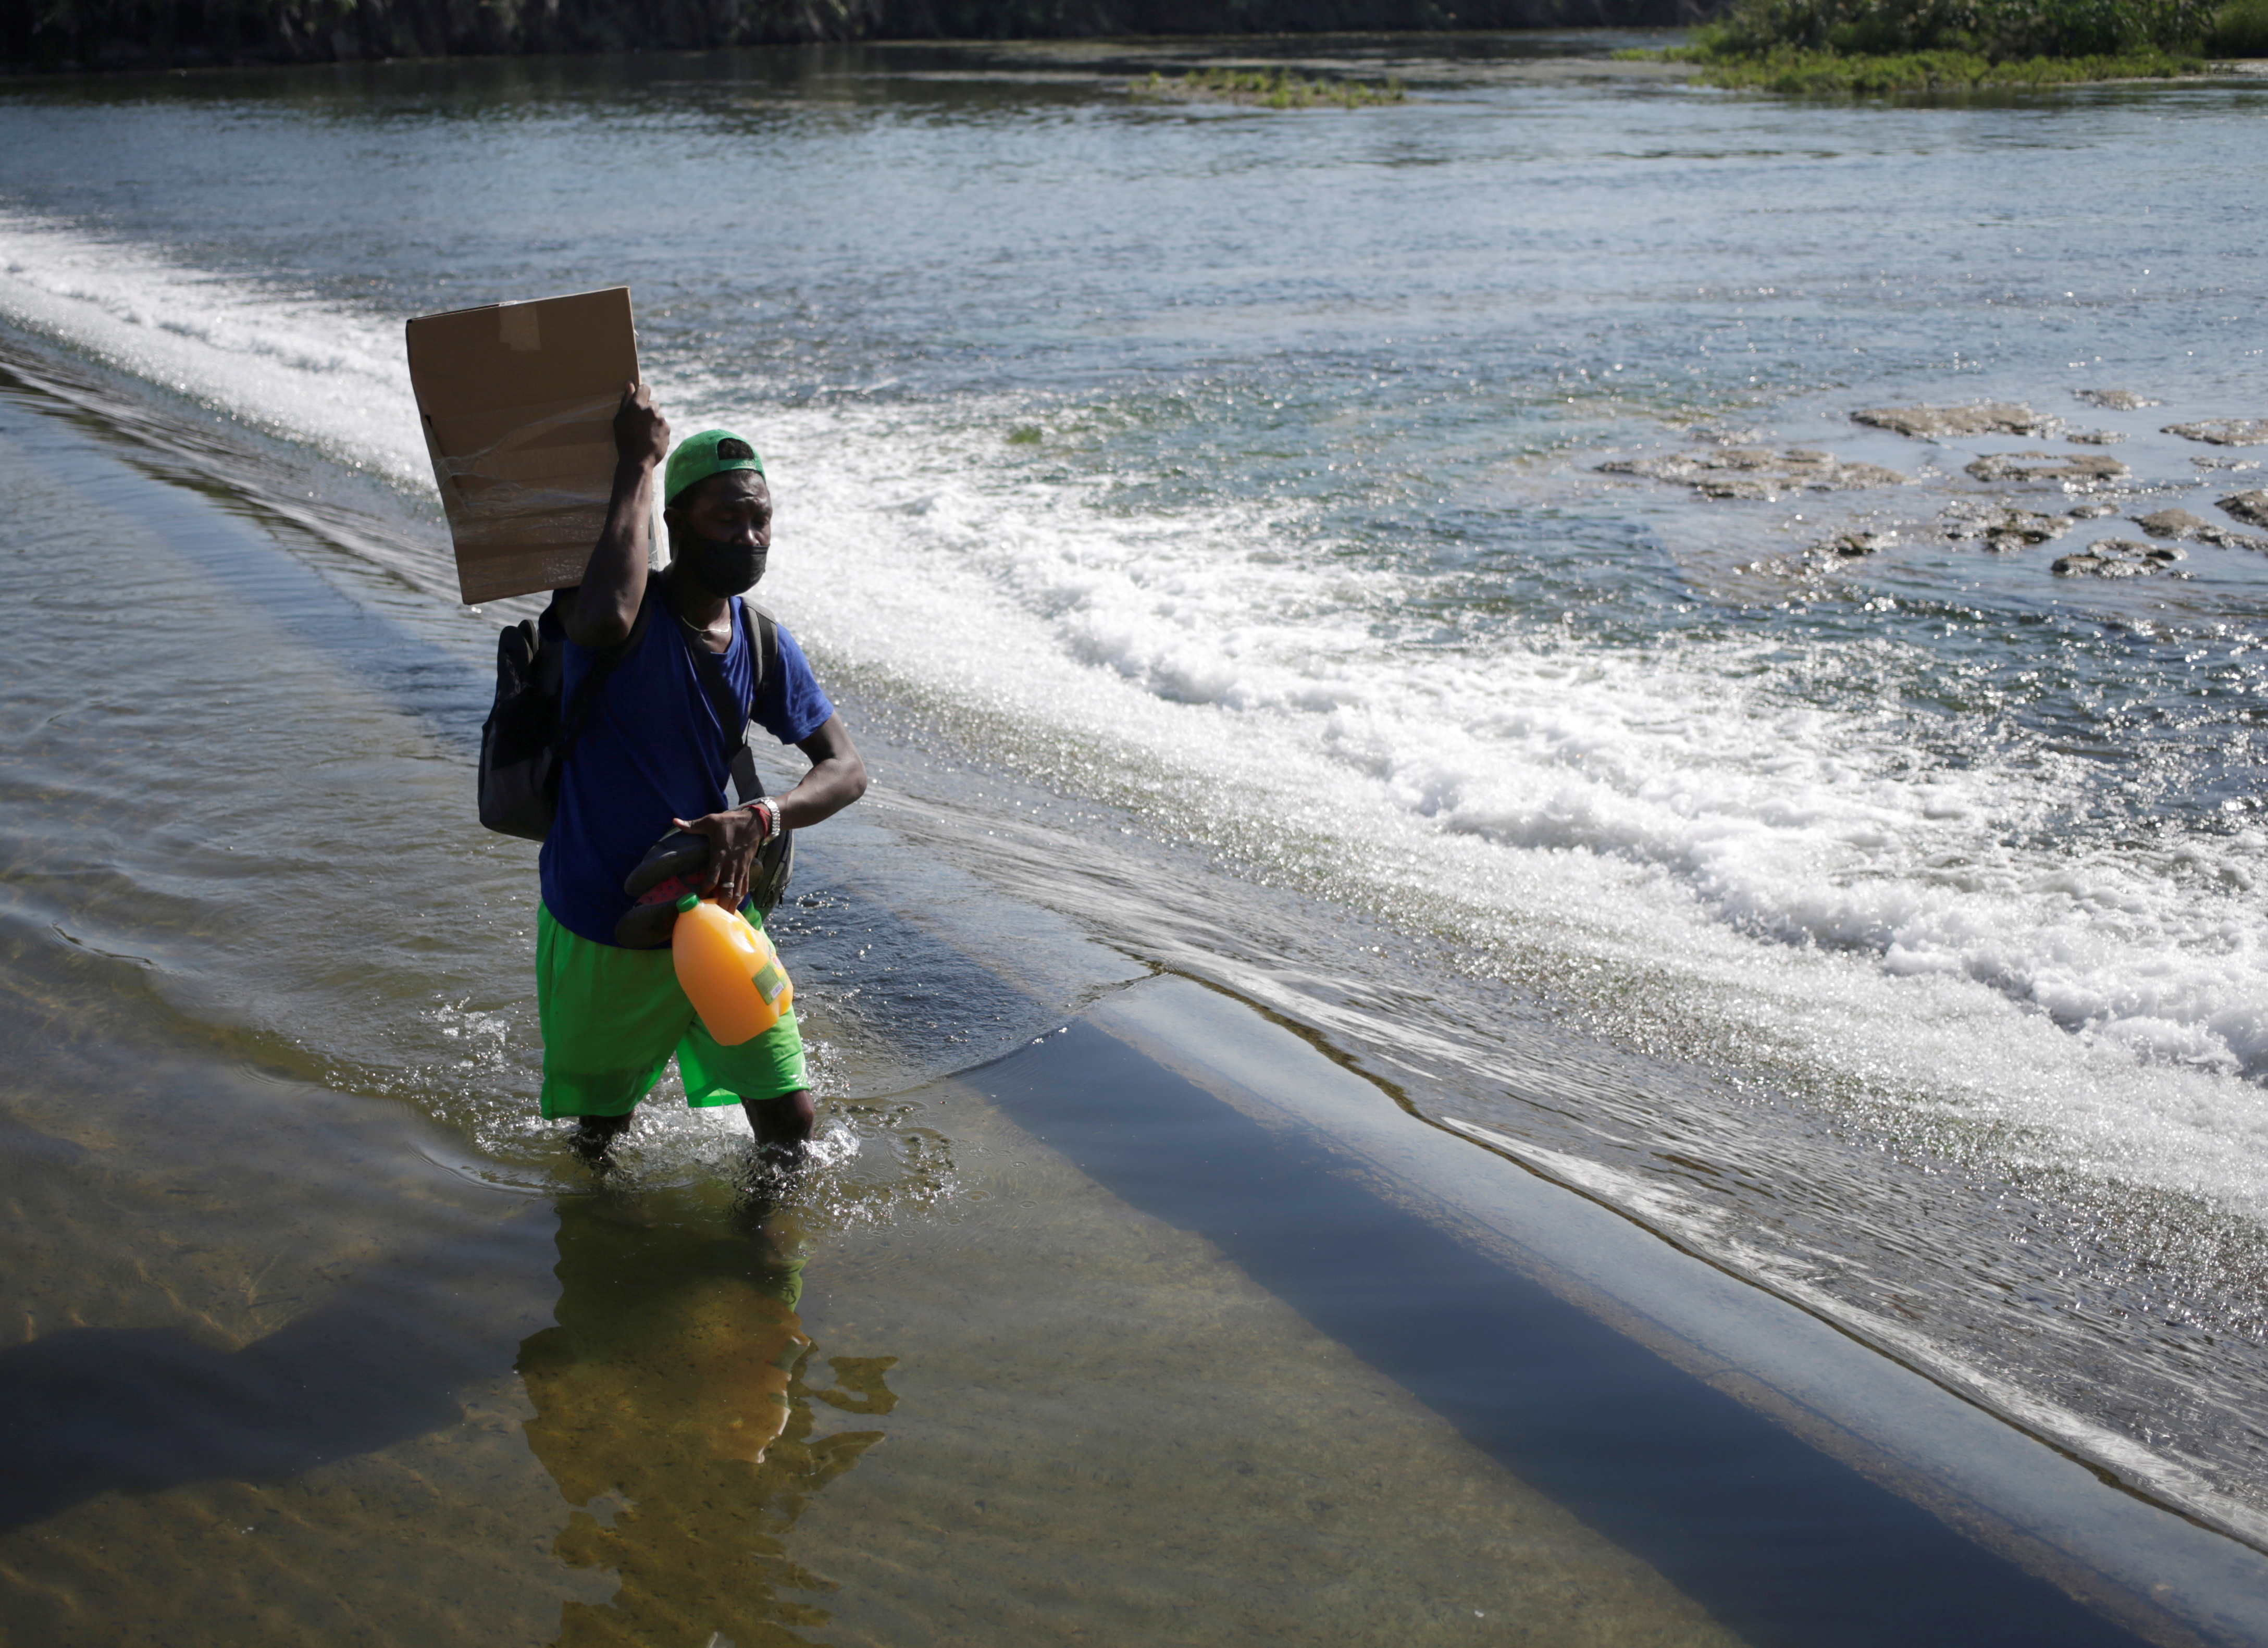 Migrant asylum seeker Jean Agenord walks back across the Rio Grande river, which divides the border between Ciudad Acuna, Mexico and Del Rio, Texas, U.S., after being rejected by Texas police officers, after he tried to cross into the U.S. with his family, as seen from Ciudad Acuna, in Ciudad Acuna, Mexico September 19, 2021. REUTERS/Daniel Becerril